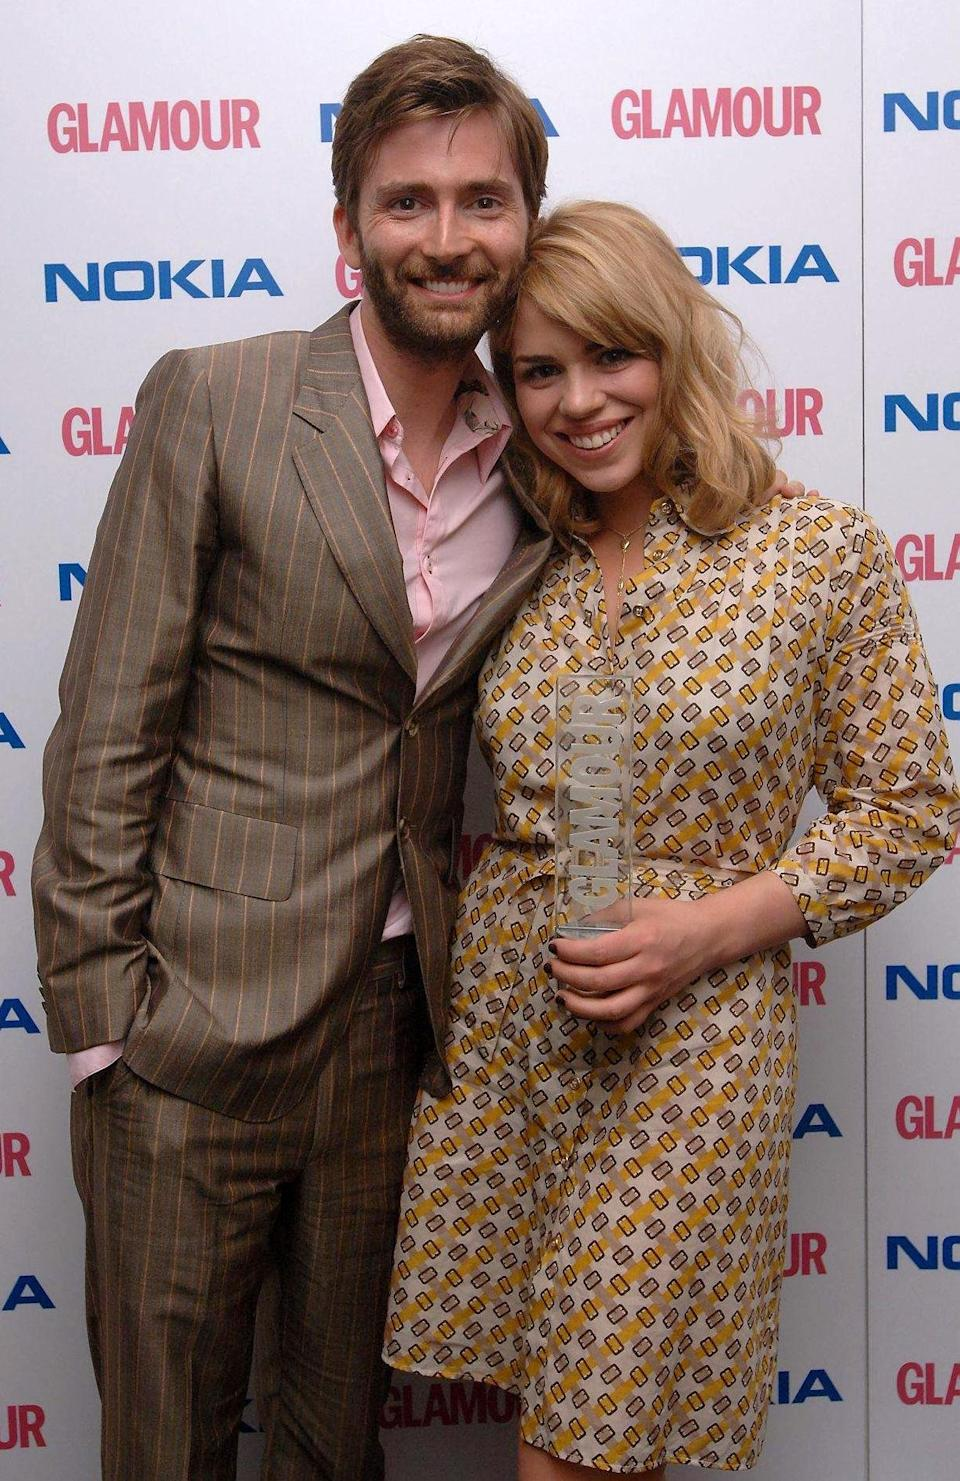 Billie Piper wins UK TV Actress of the Year, presented by David Tennant (left), during the Glamour Women of the Year Awards, at Berkeley Square, central London.. (Photo by Ian West - PA Images/PA Images via Getty Images)